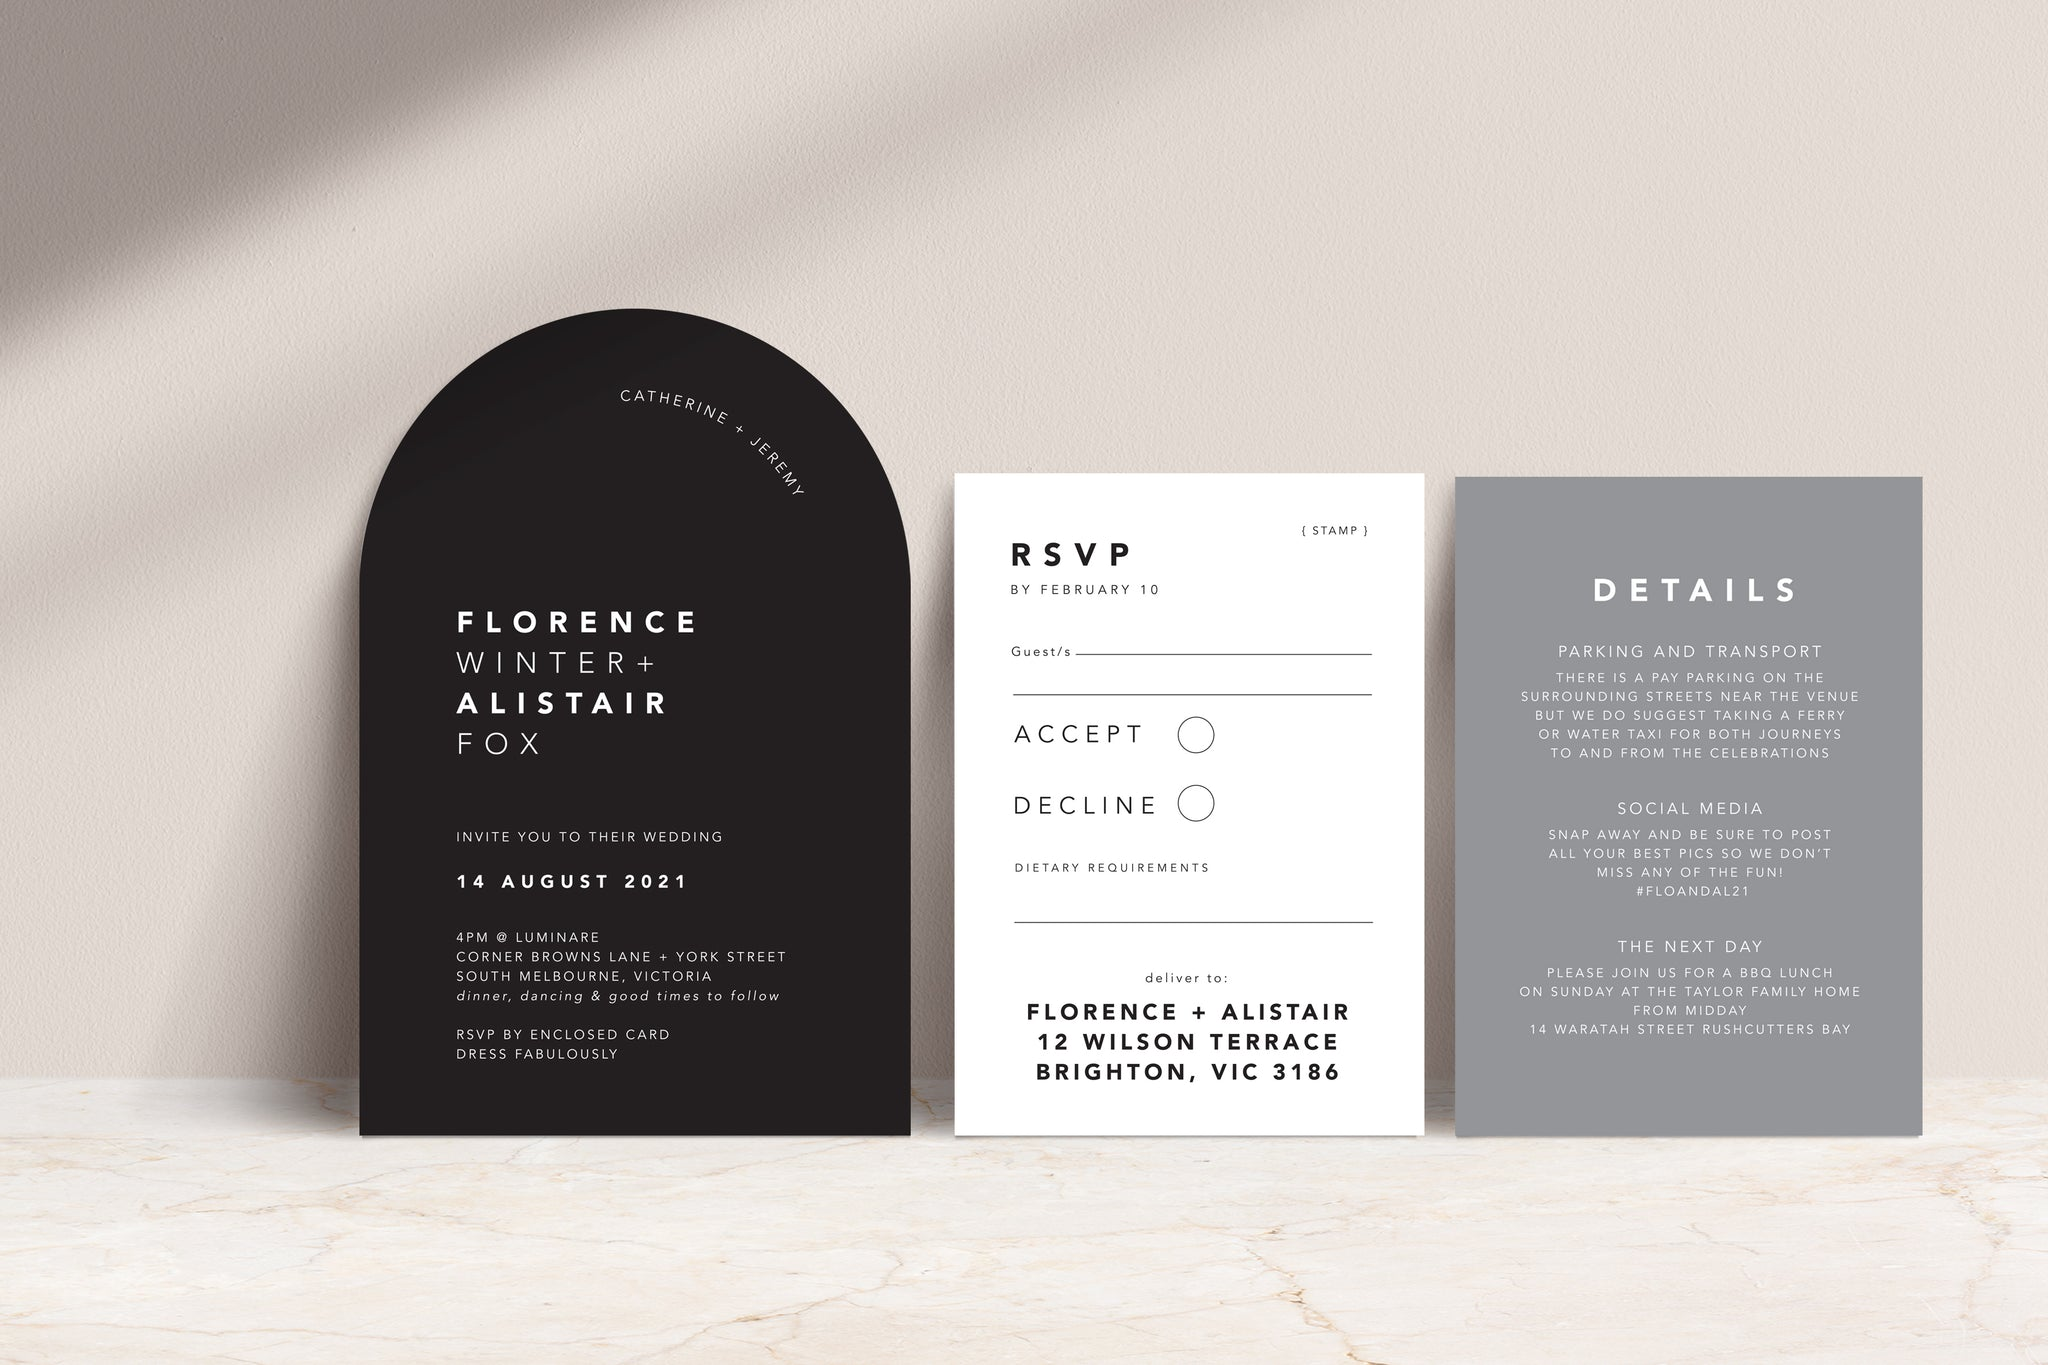 Black Arch Invite / white ink, White Card RSVP / black print, Ash Grey Details card with white ink ext